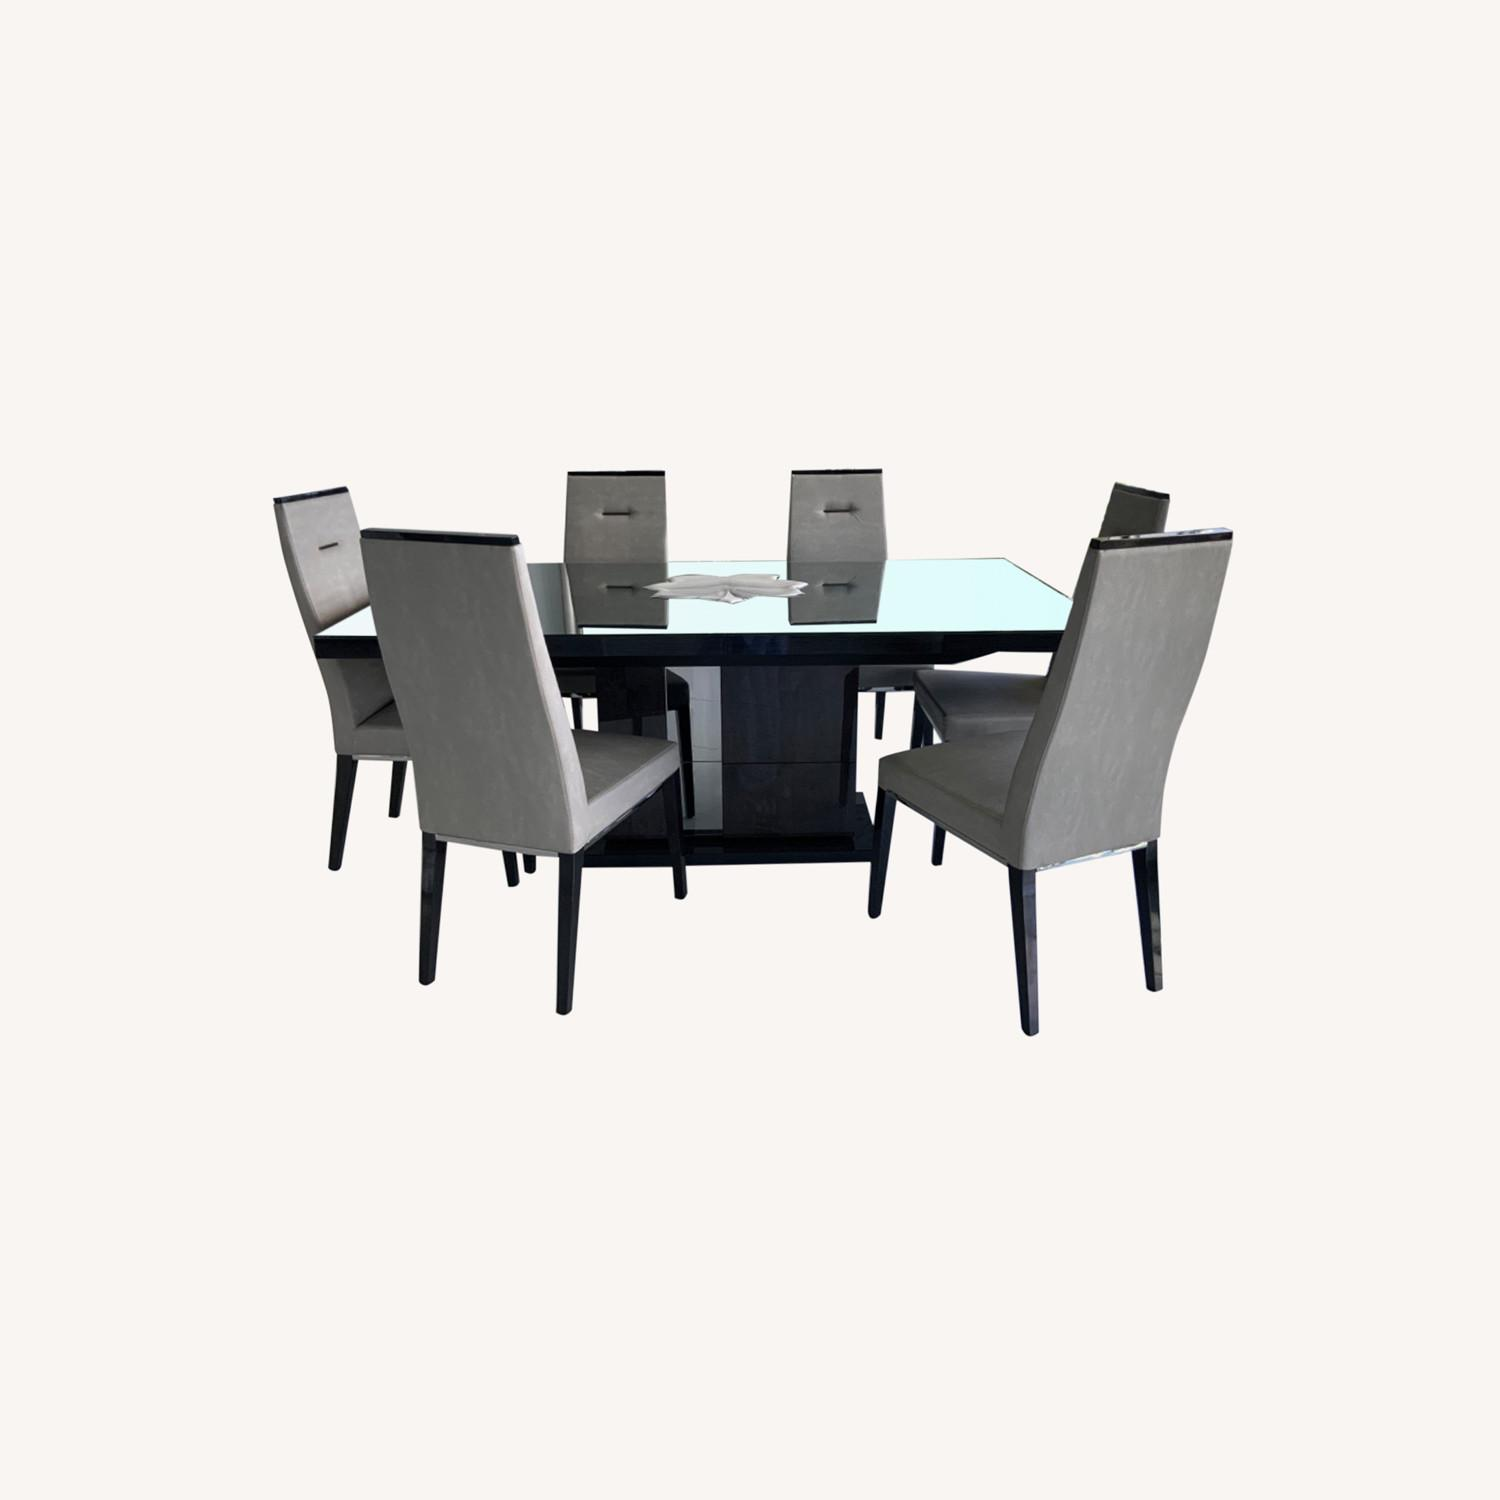 Dining Room Set - 6 leather chairs - image-0